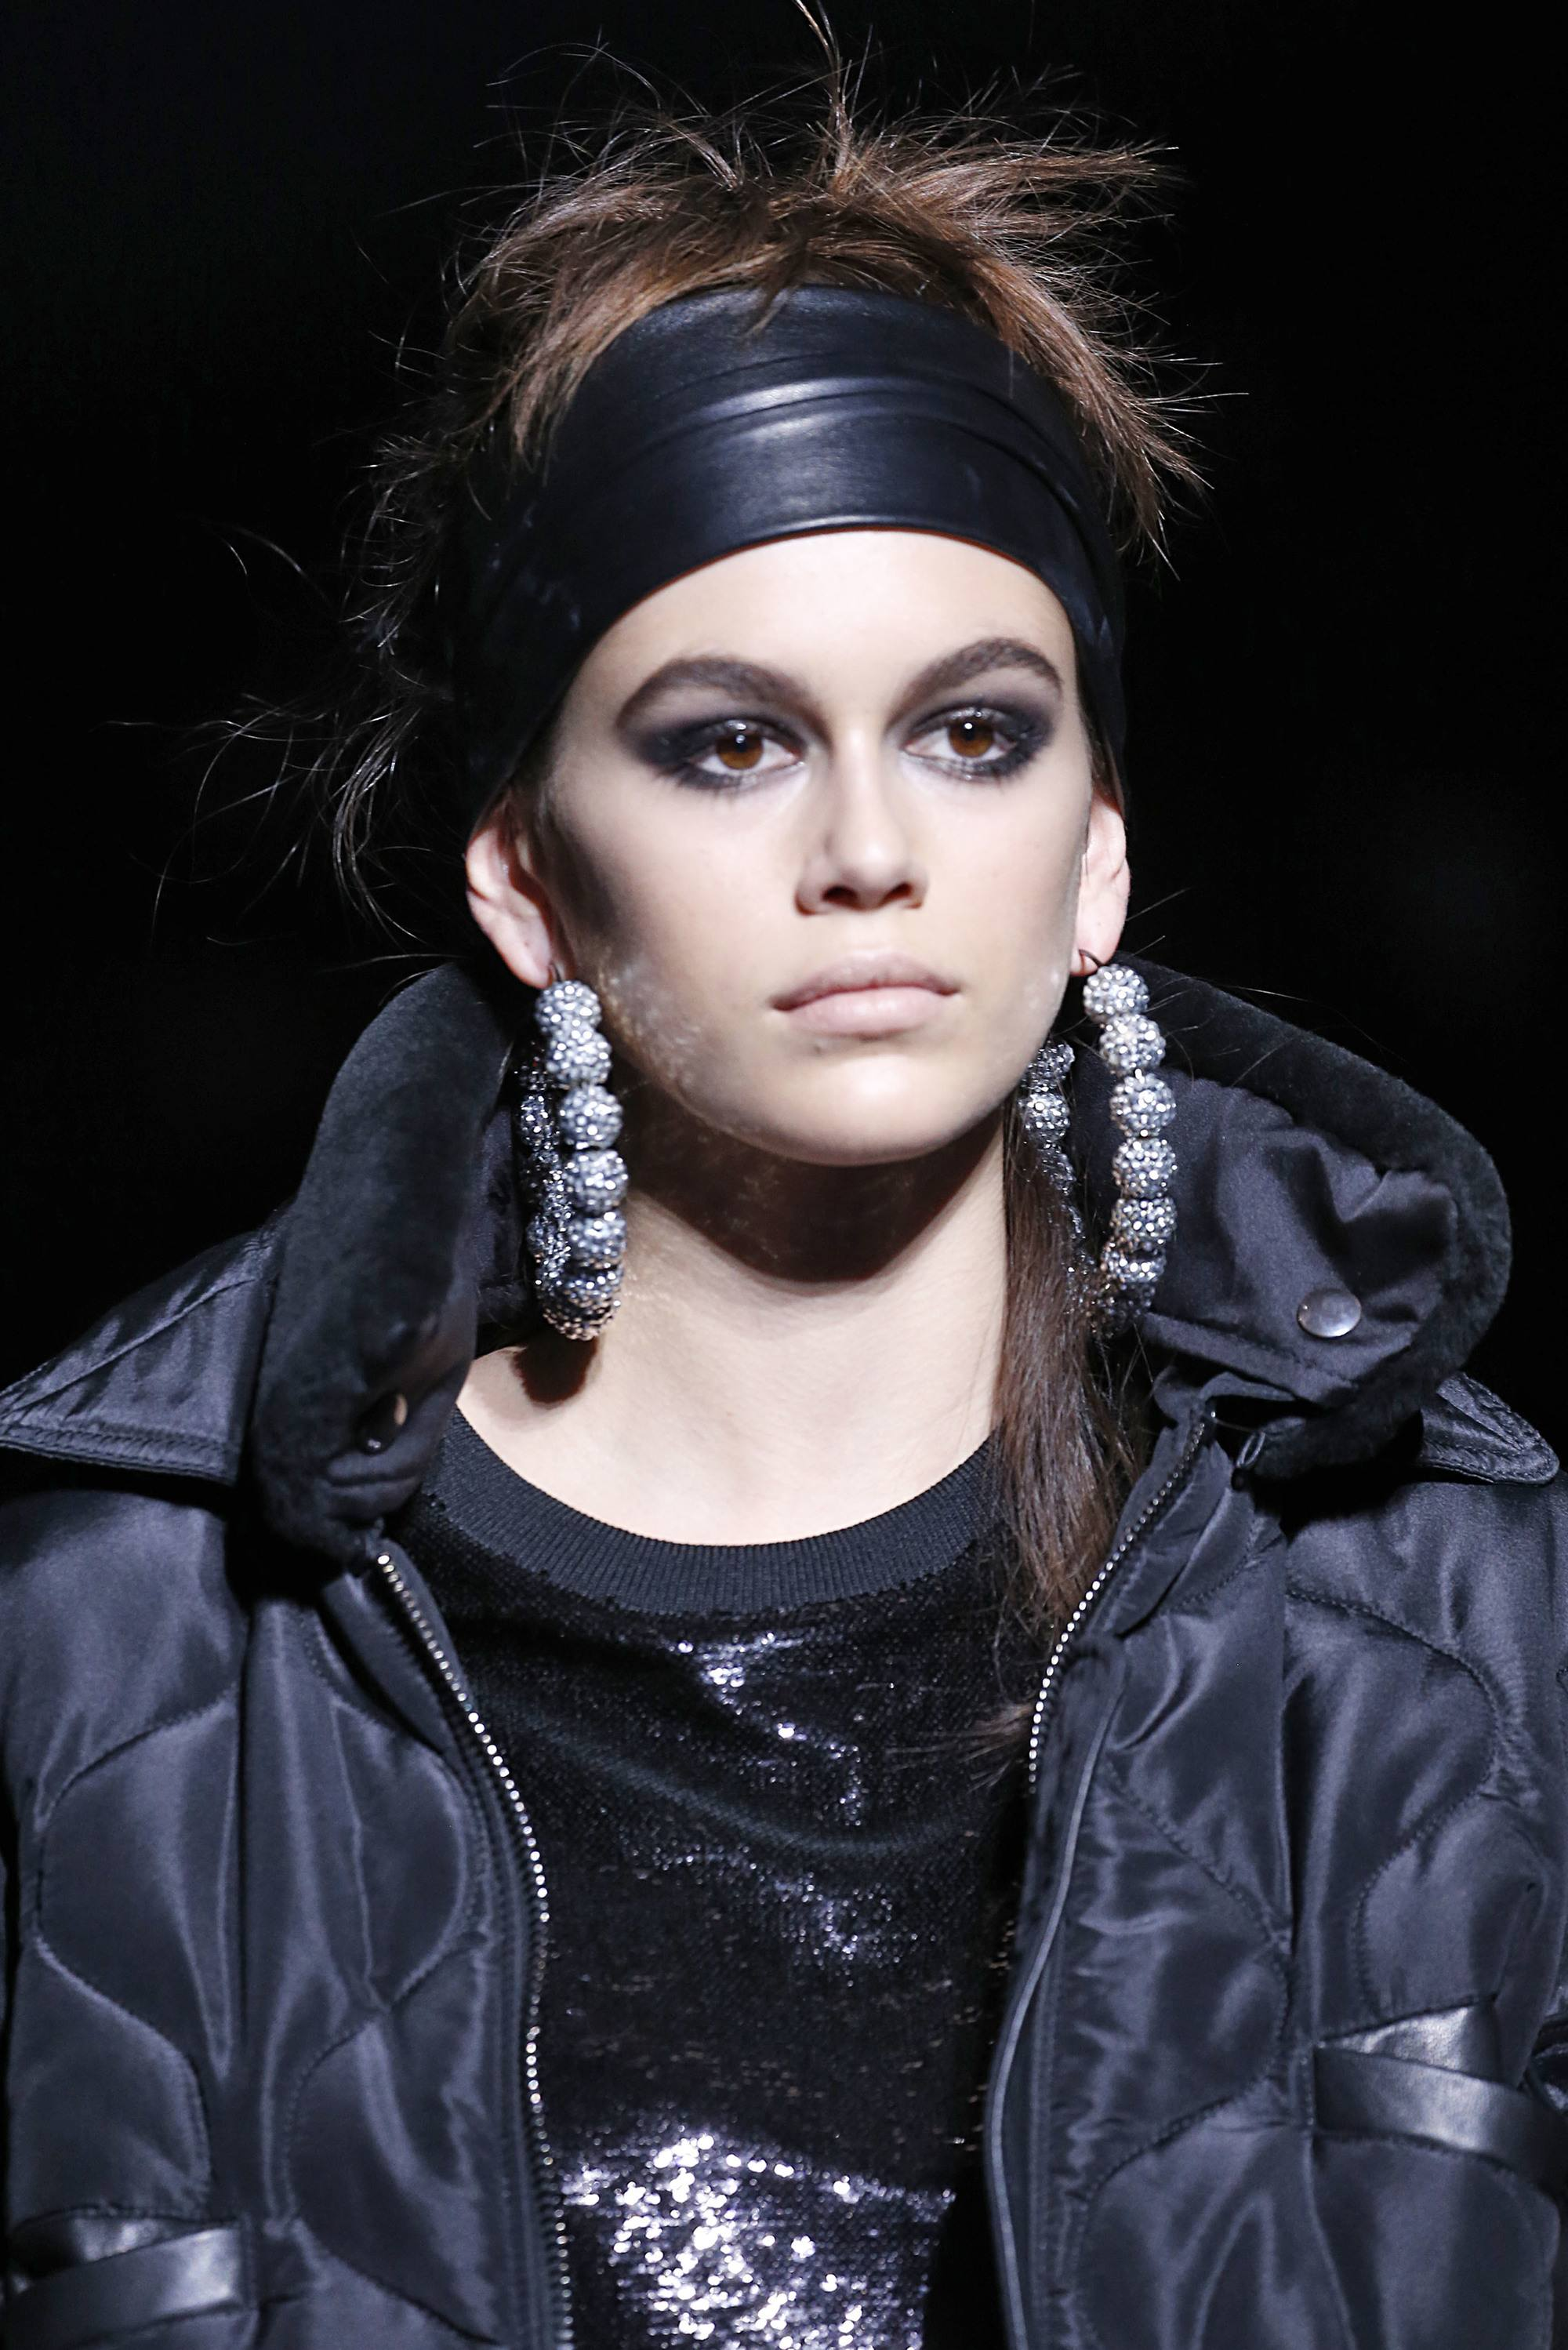 kaia gerber on tom ford runway with brown hair in updo with large black leather headband and large hoop earrings